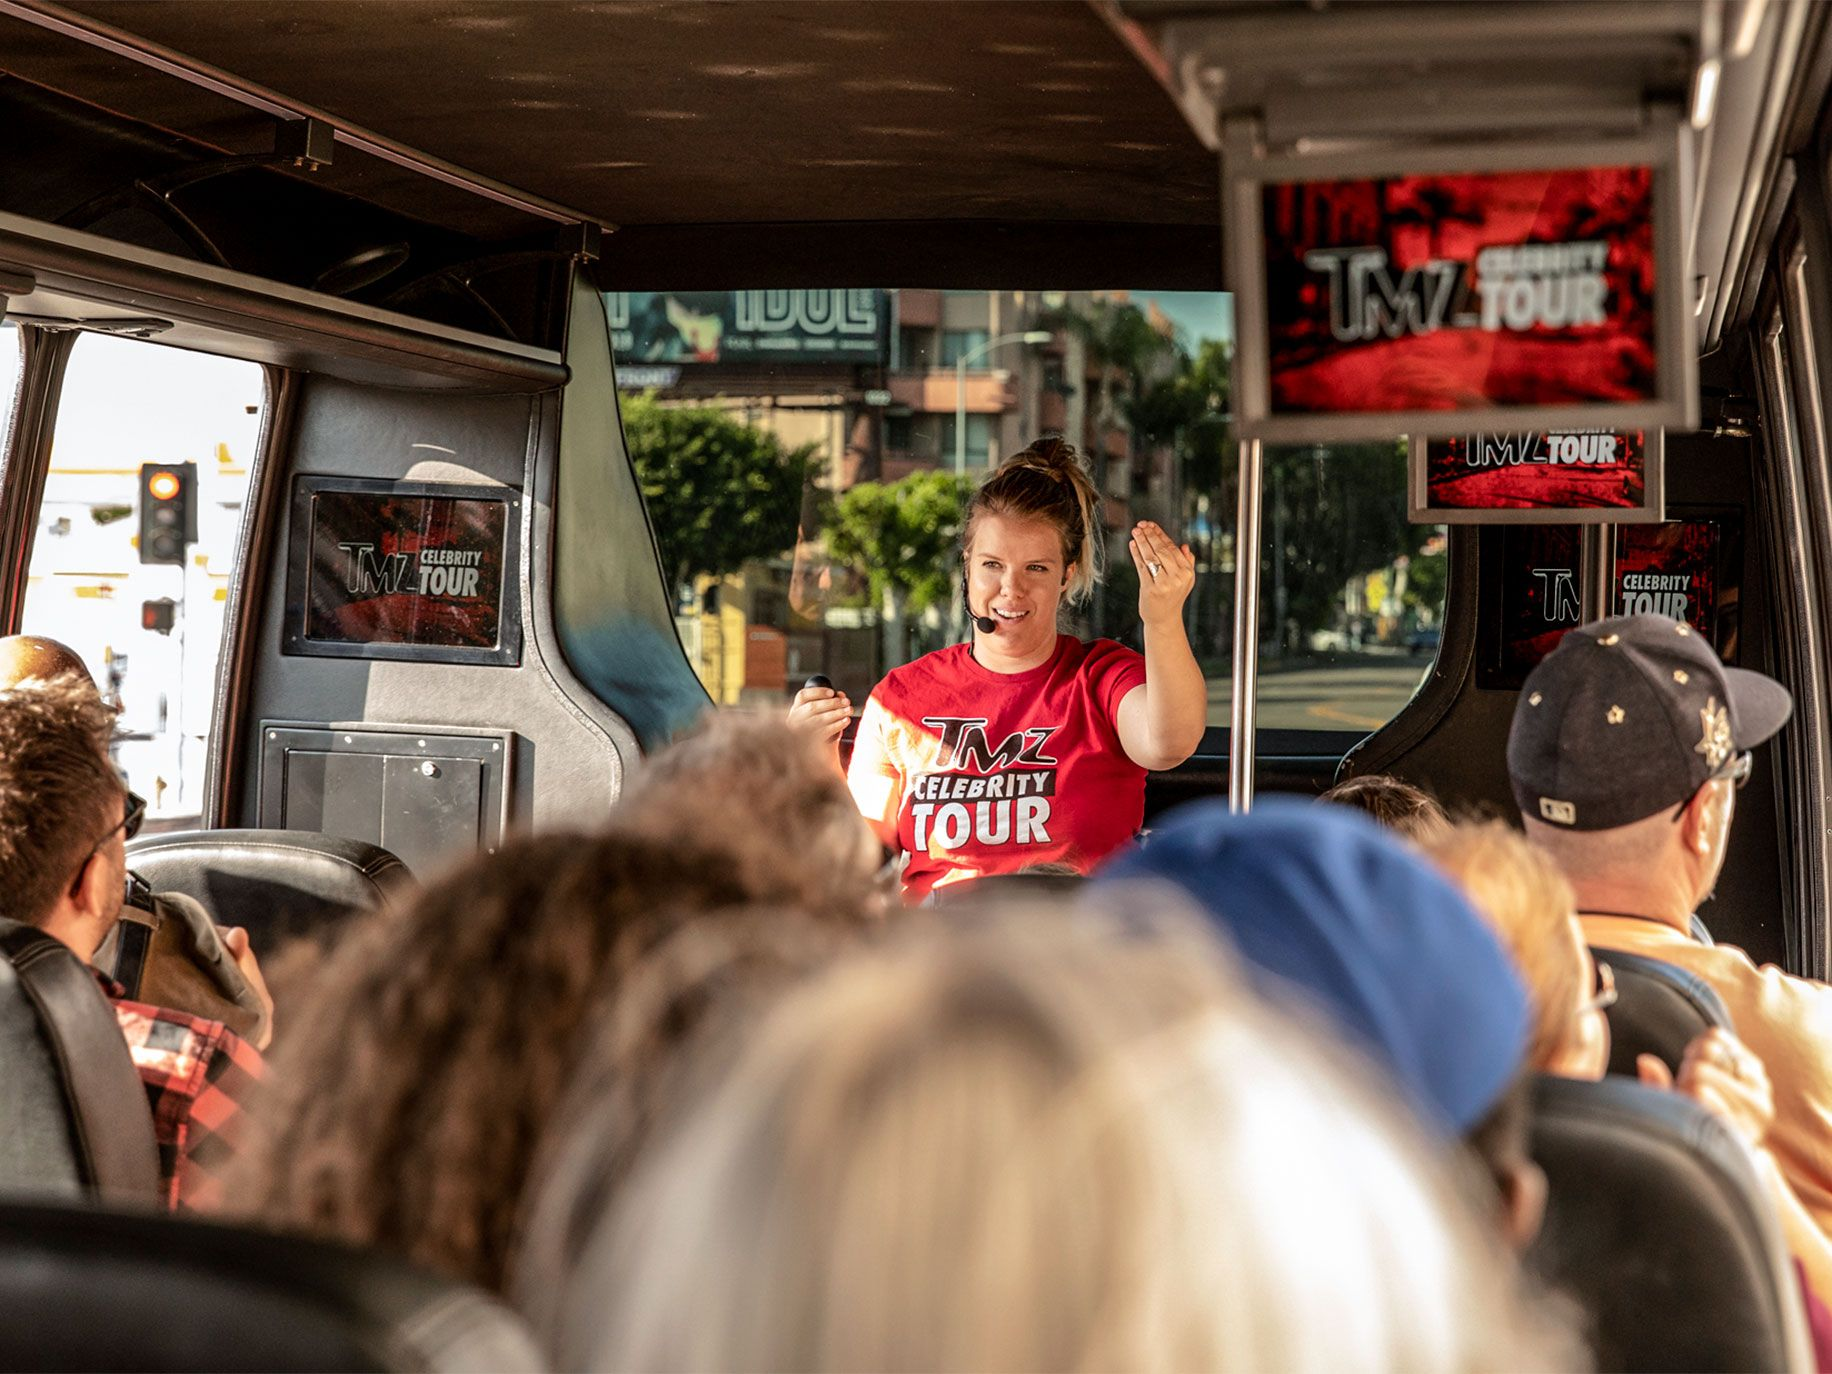 TMZ's tour guide Brittney tells tourists tales of scandals involving celebrities like Michael Jackson, Paris Hilton and the Kardashians. TMZ's tours of Hollywood landmarks are the latest twist on a Tinseltown tradition.